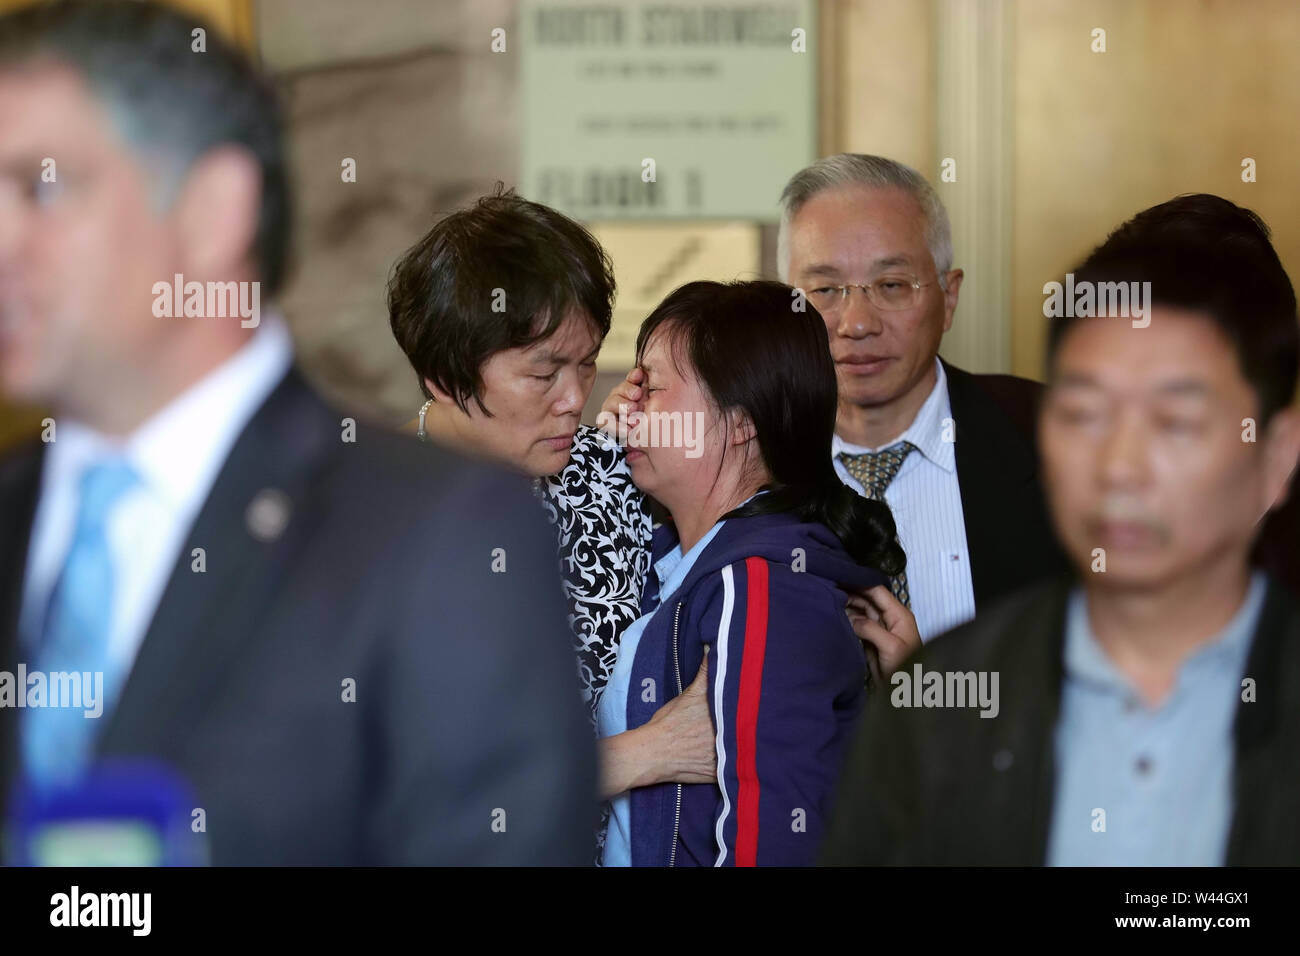 Beijing, USA. 18th July, 2019. Zhang Yingying's mother Ye Lifeng (C) is seen at a press conference after sentencing in Peoria, Illinois, the United States, July 18, 2019. Brendt Christensen, the kidnapper and killer of Chinese scholar Zhang Yingying in 2017, was sentenced on Thursday to life imprisonment without possibility of release, Judge James Shadid announced the verdict in a federal court of Peoria in the U.S. state of Illinois, after the jury failed to reach a unanimous decision on whether he should be sentenced to death or life in prison. Credit: Wang Ping/Xinhua/Alamy Live News - Stock Image